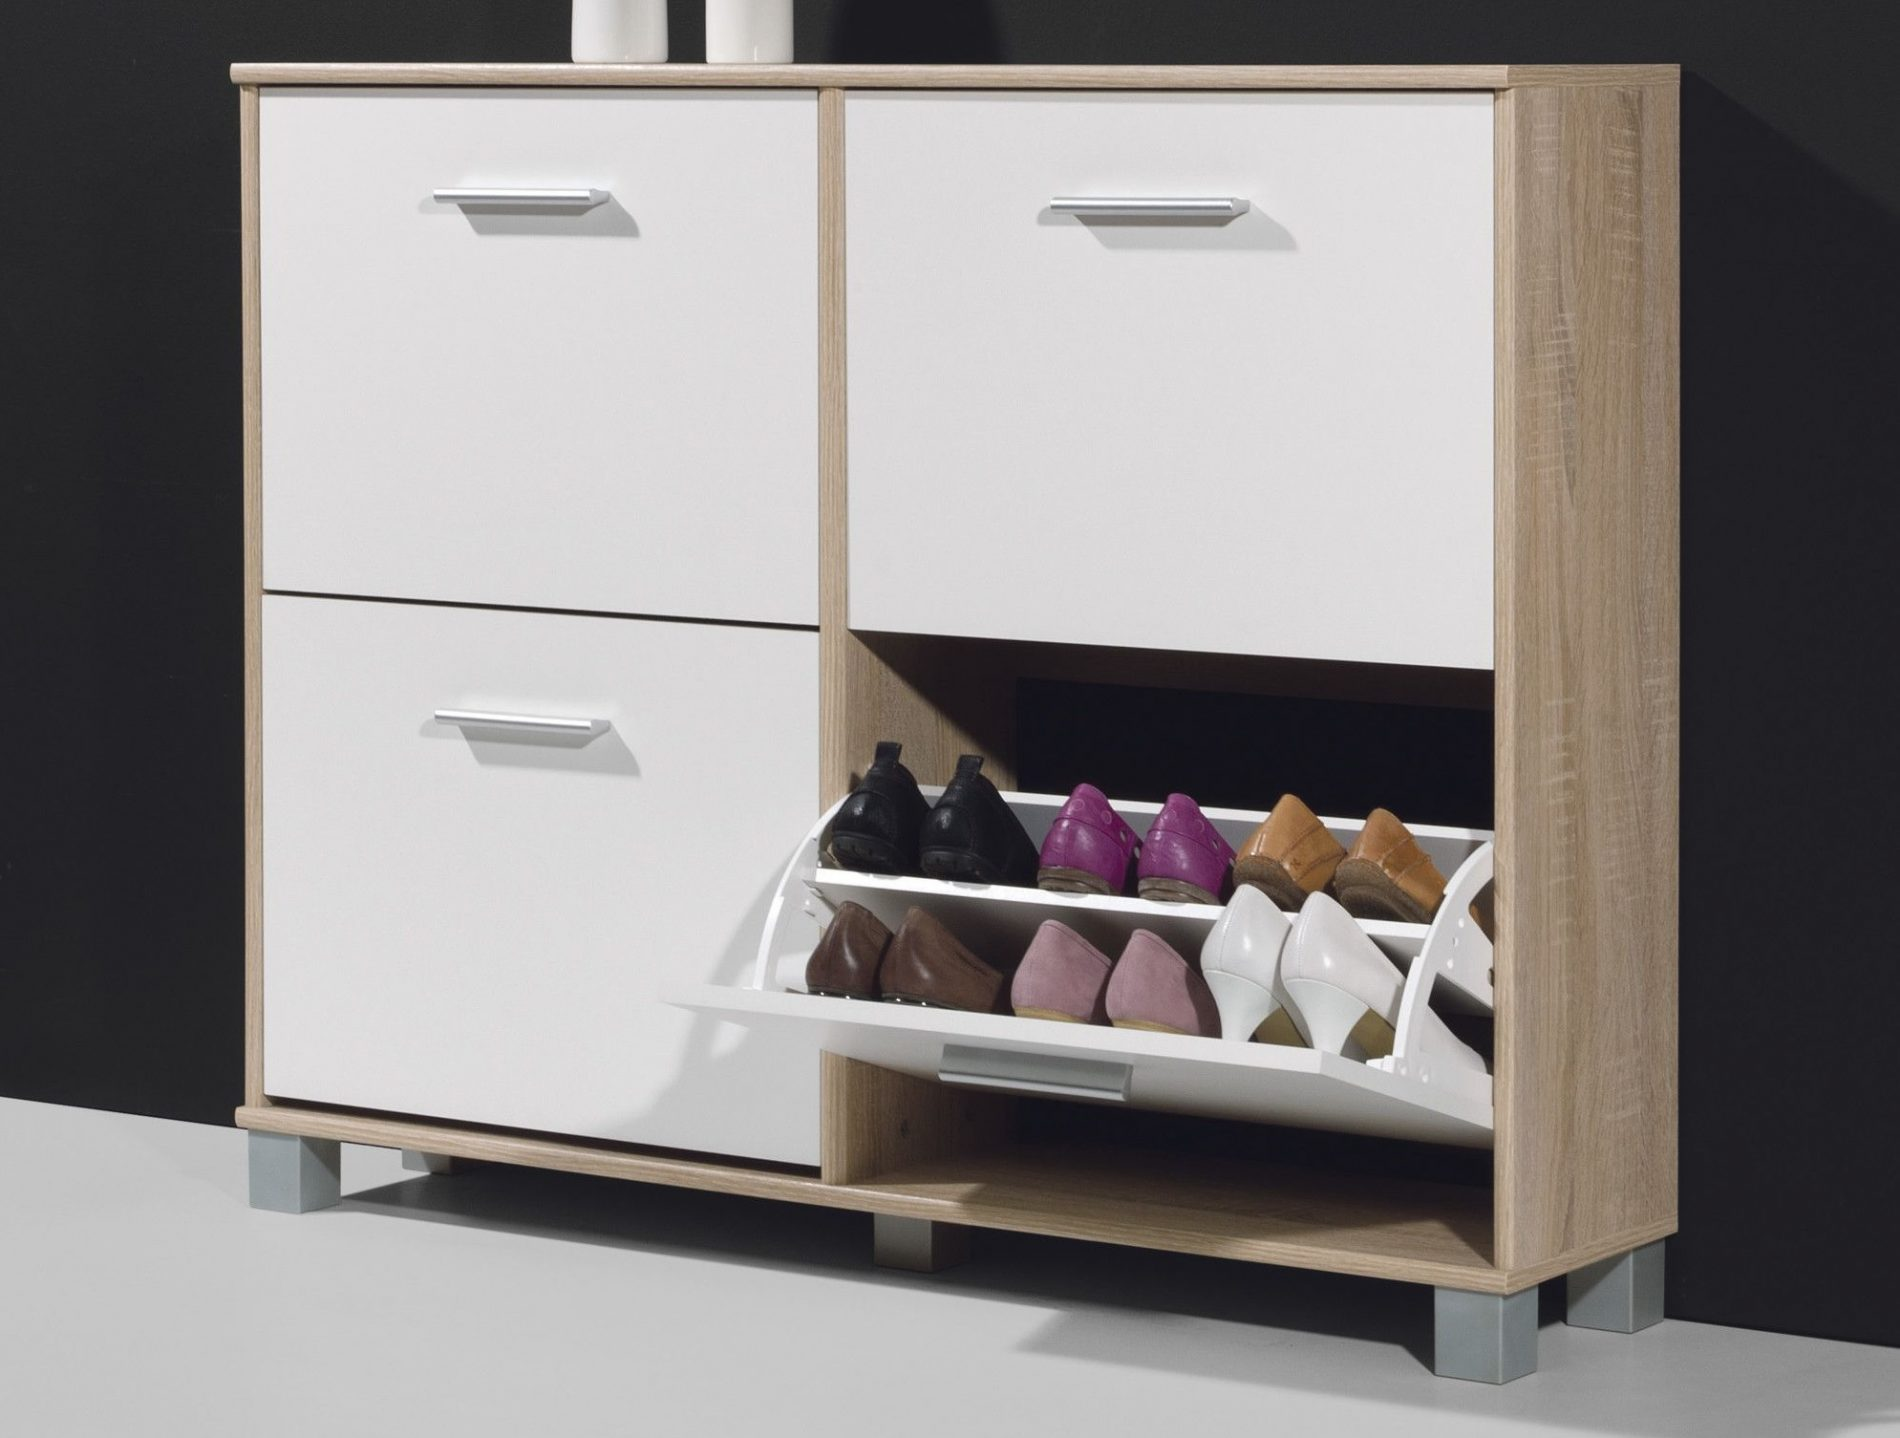 10 Most Popular Shoe Cabinets for 2020